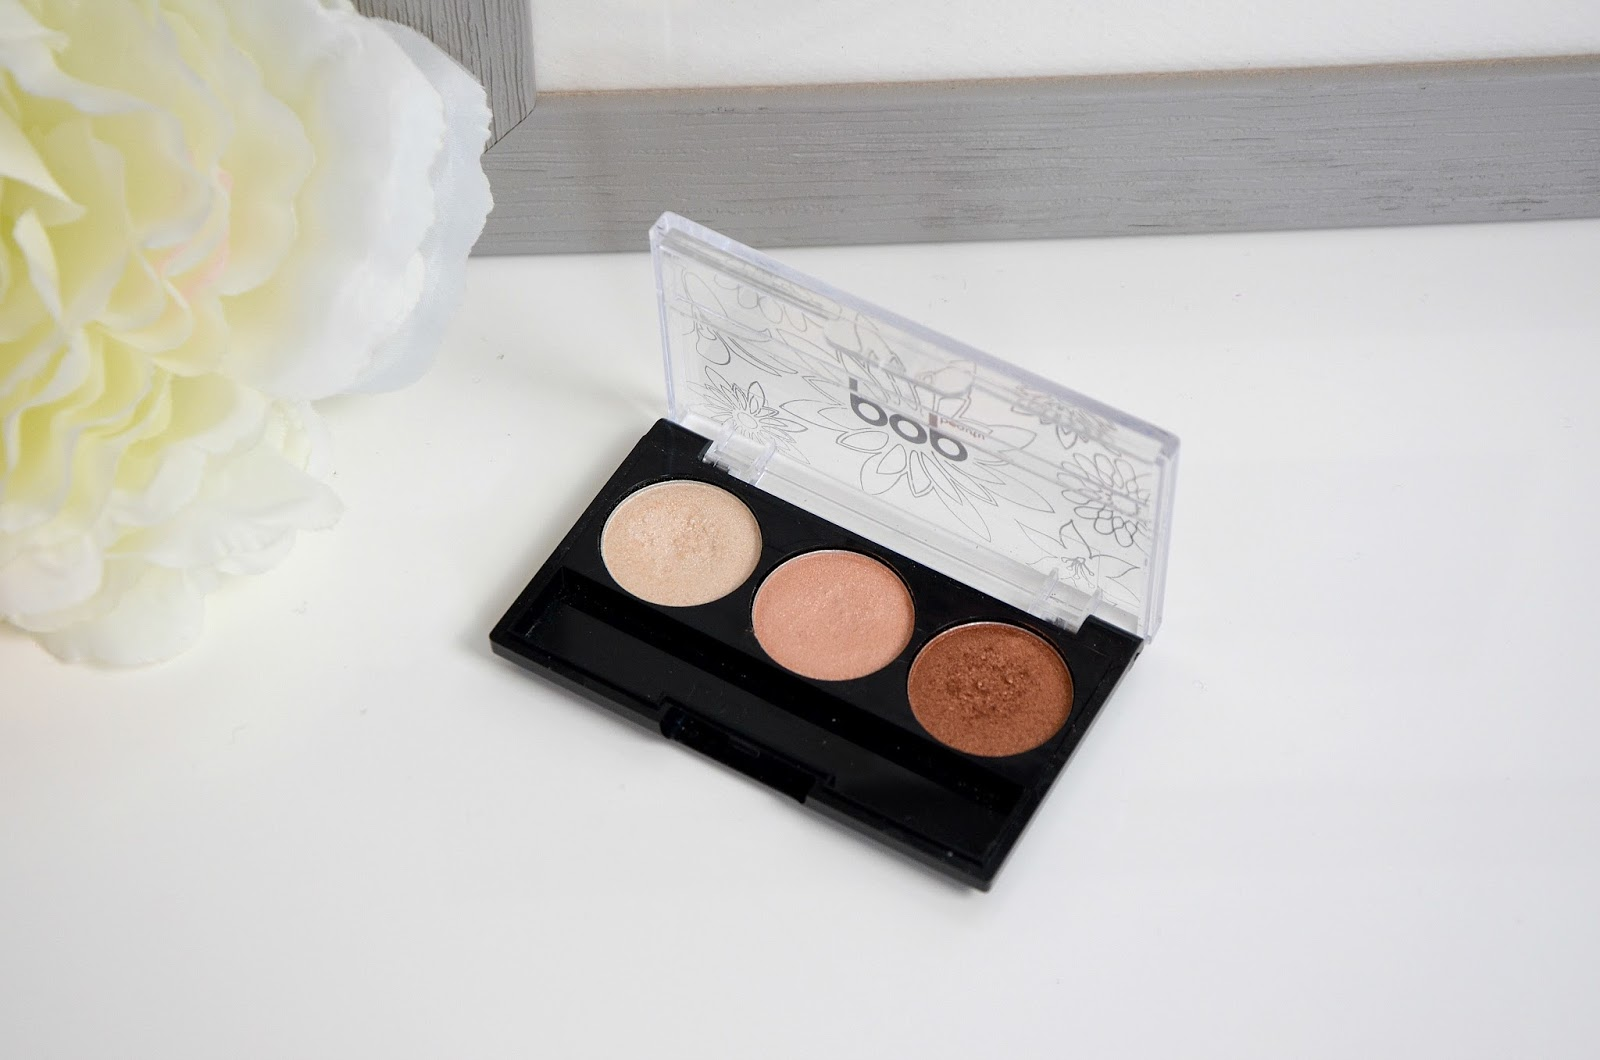 pop beauty bright up your life eye shadow trio peach parfait palette